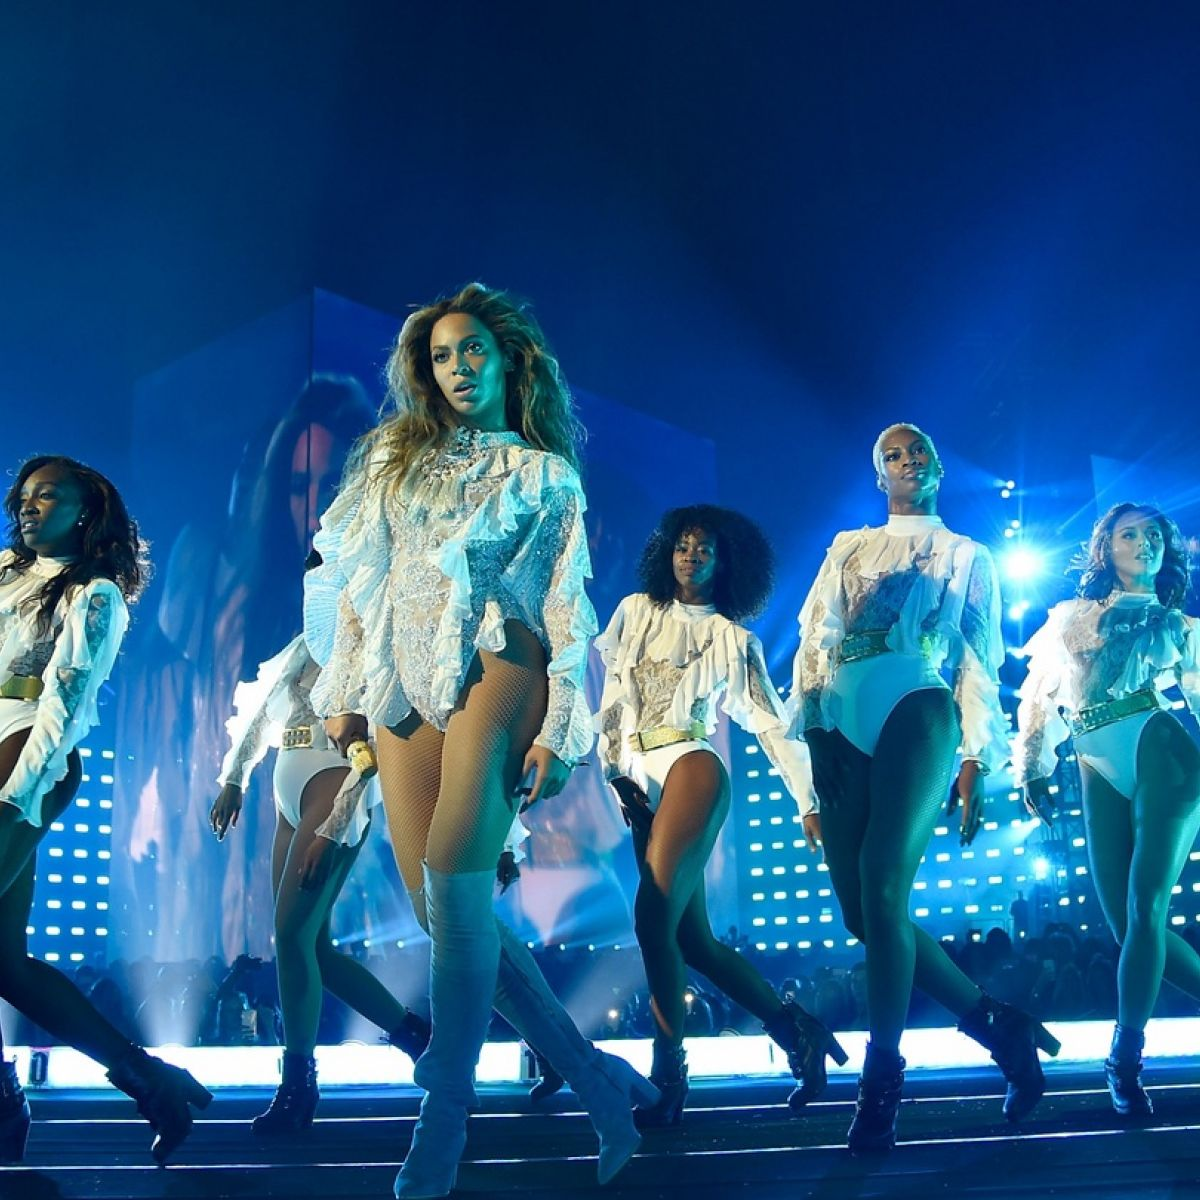 Beyoncé's way with words: lyrics of style and substance